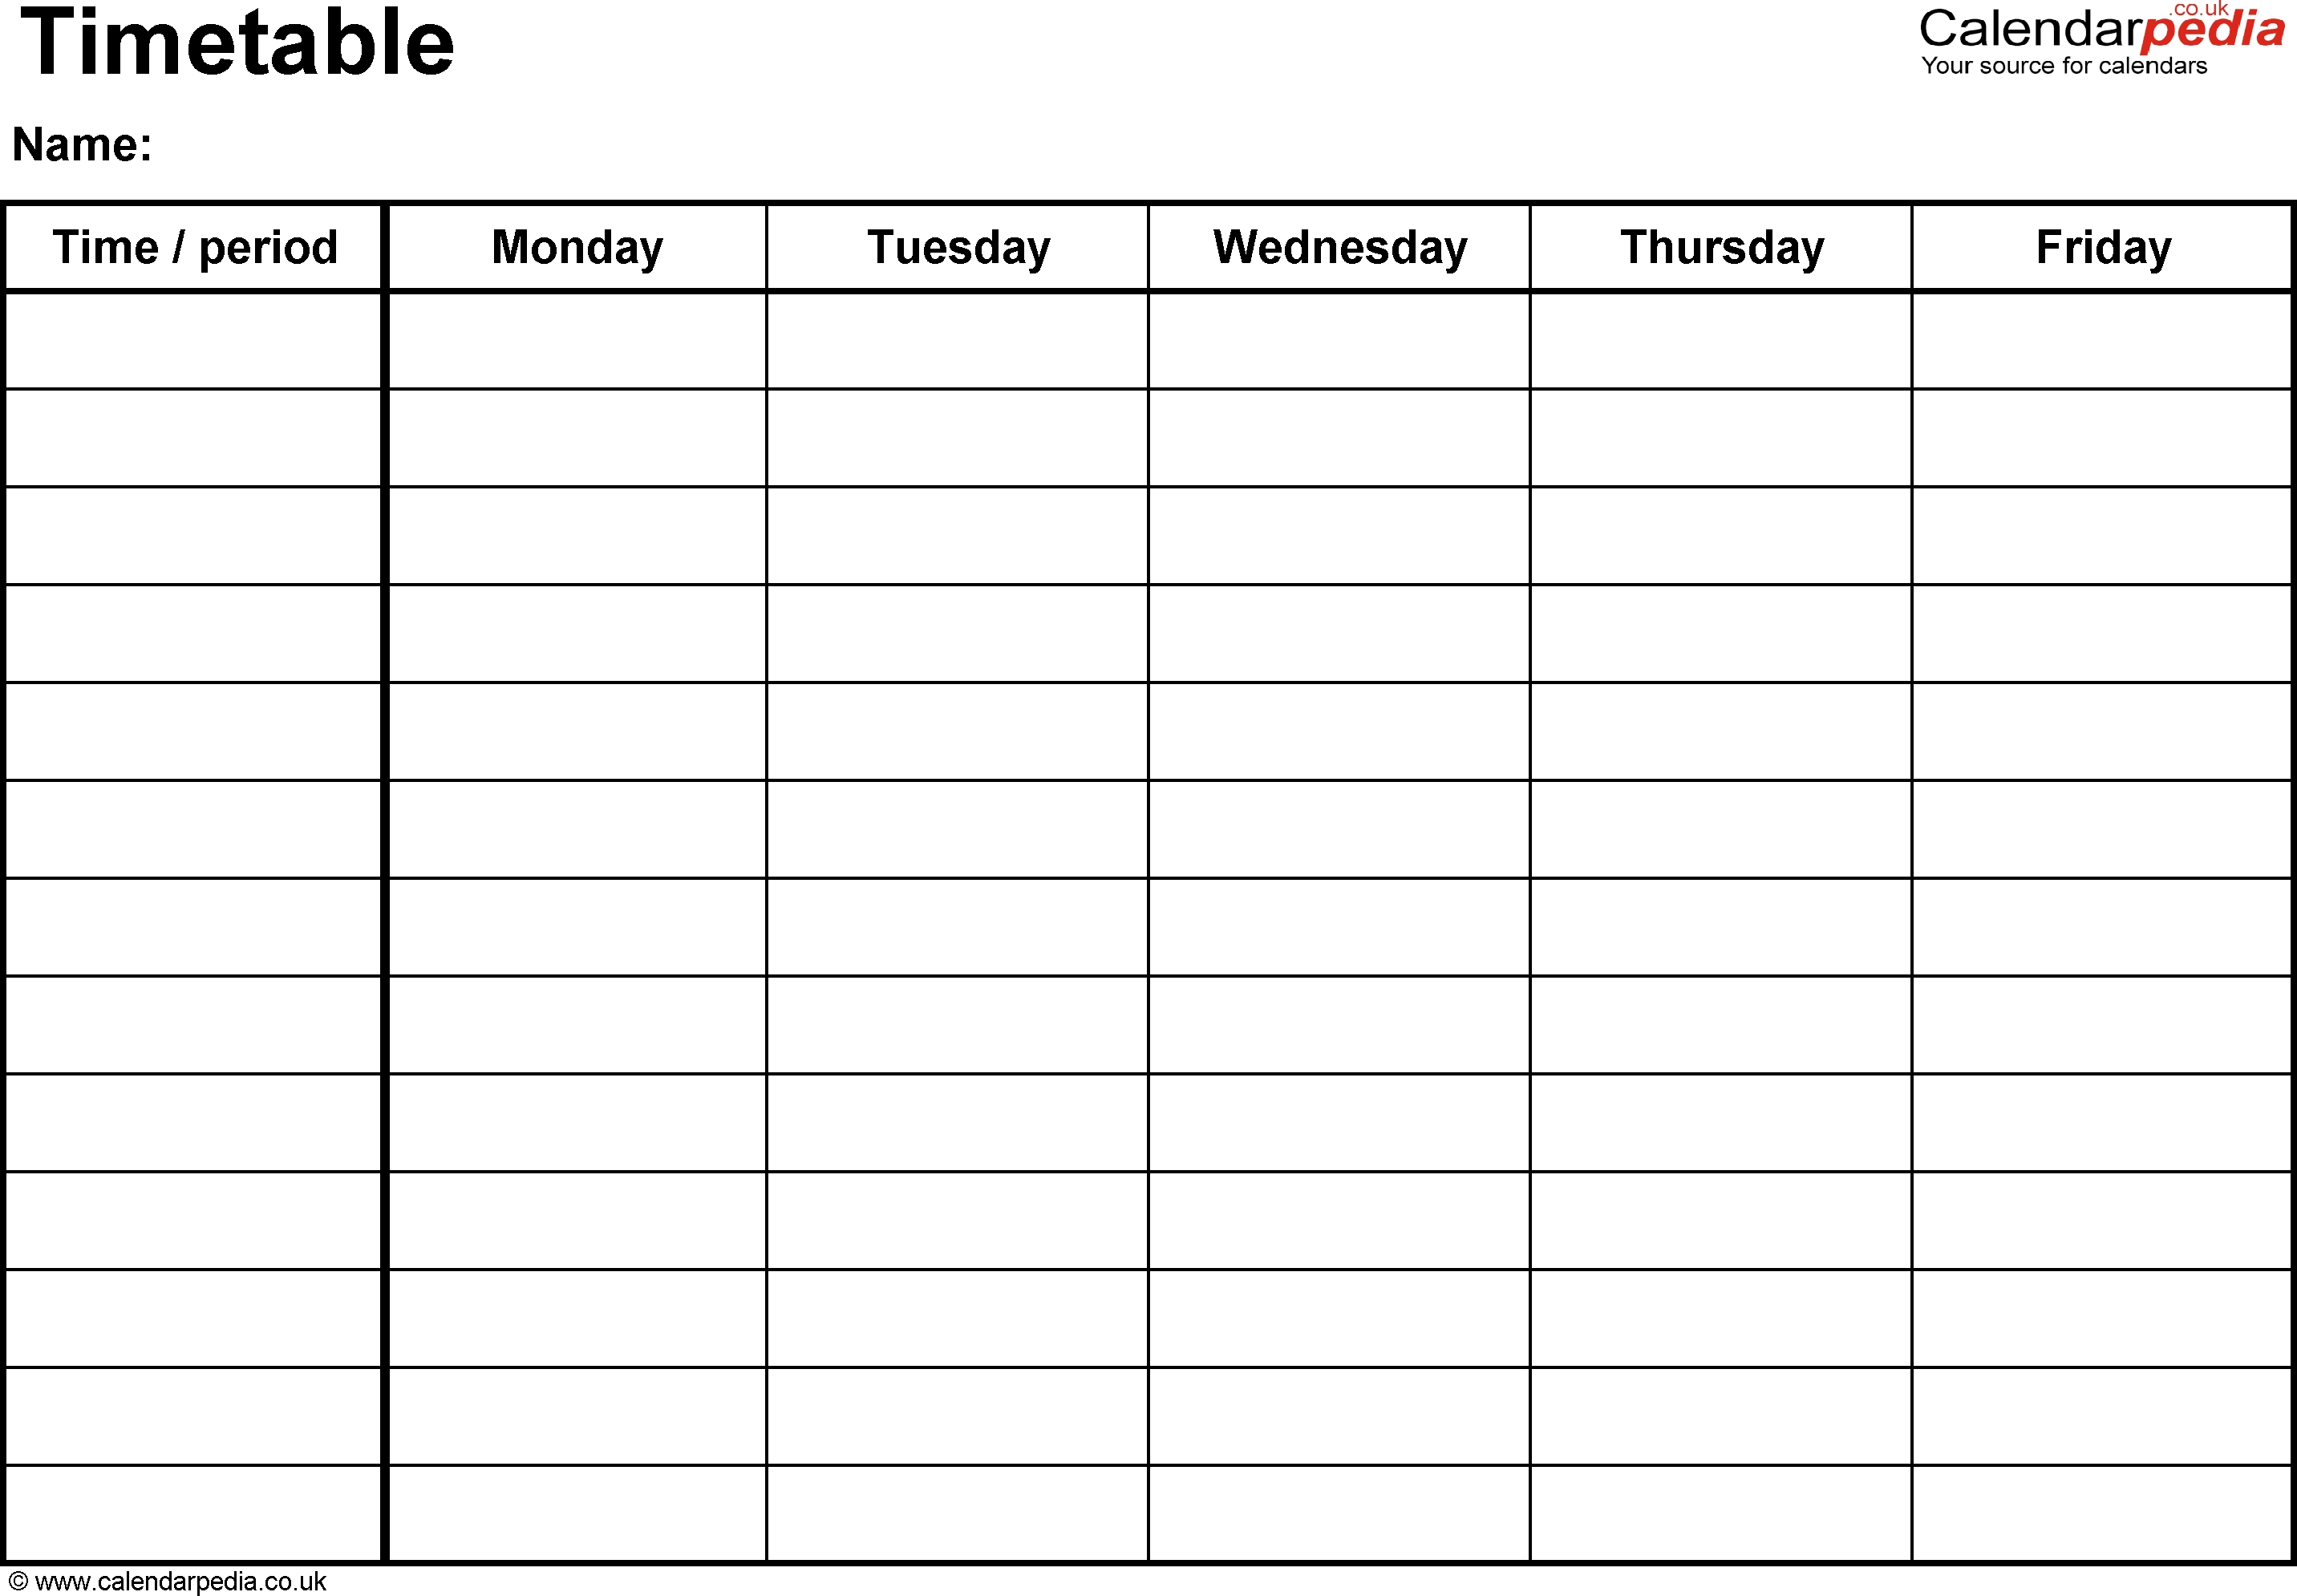 Timetables As Free Printable Templates For Microsoft Word Schedule within Monday Through Friday Monthly Calendar